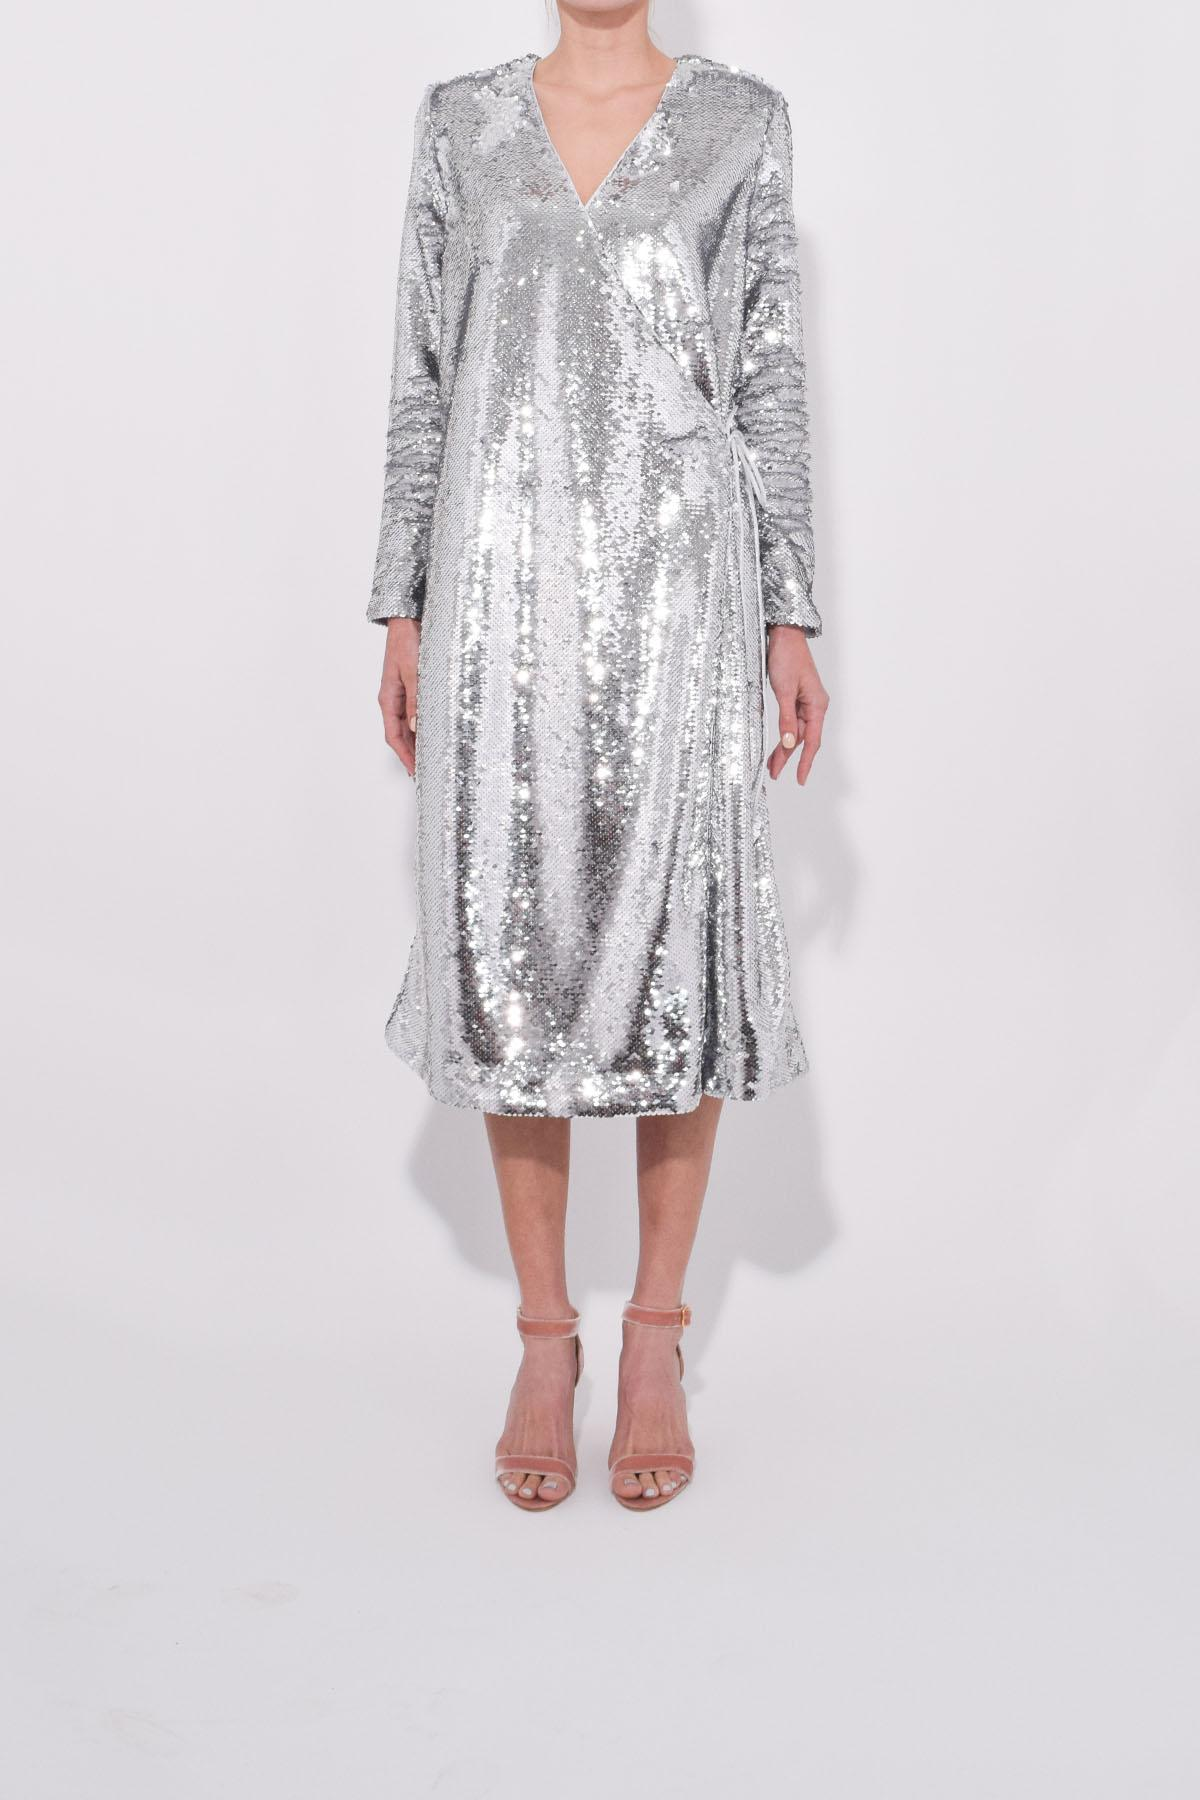 e2c10910 Ganni Sequins Wrap Dress in Metallic - Save 43% - Lyst